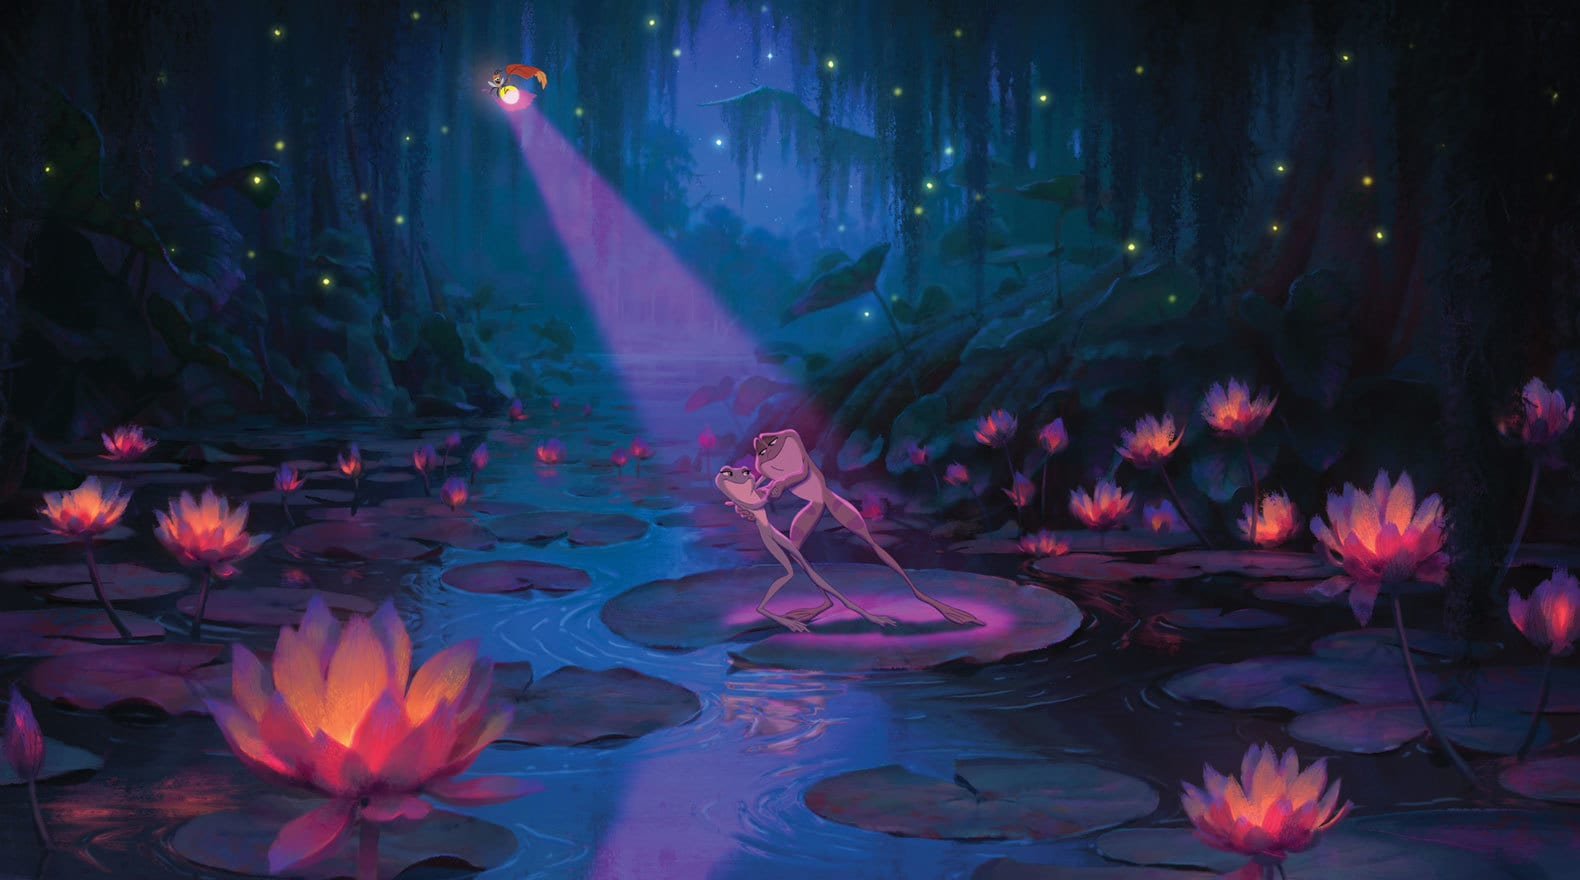 as Frogs, Tiana and Naveen dance by the light of the fireflies.